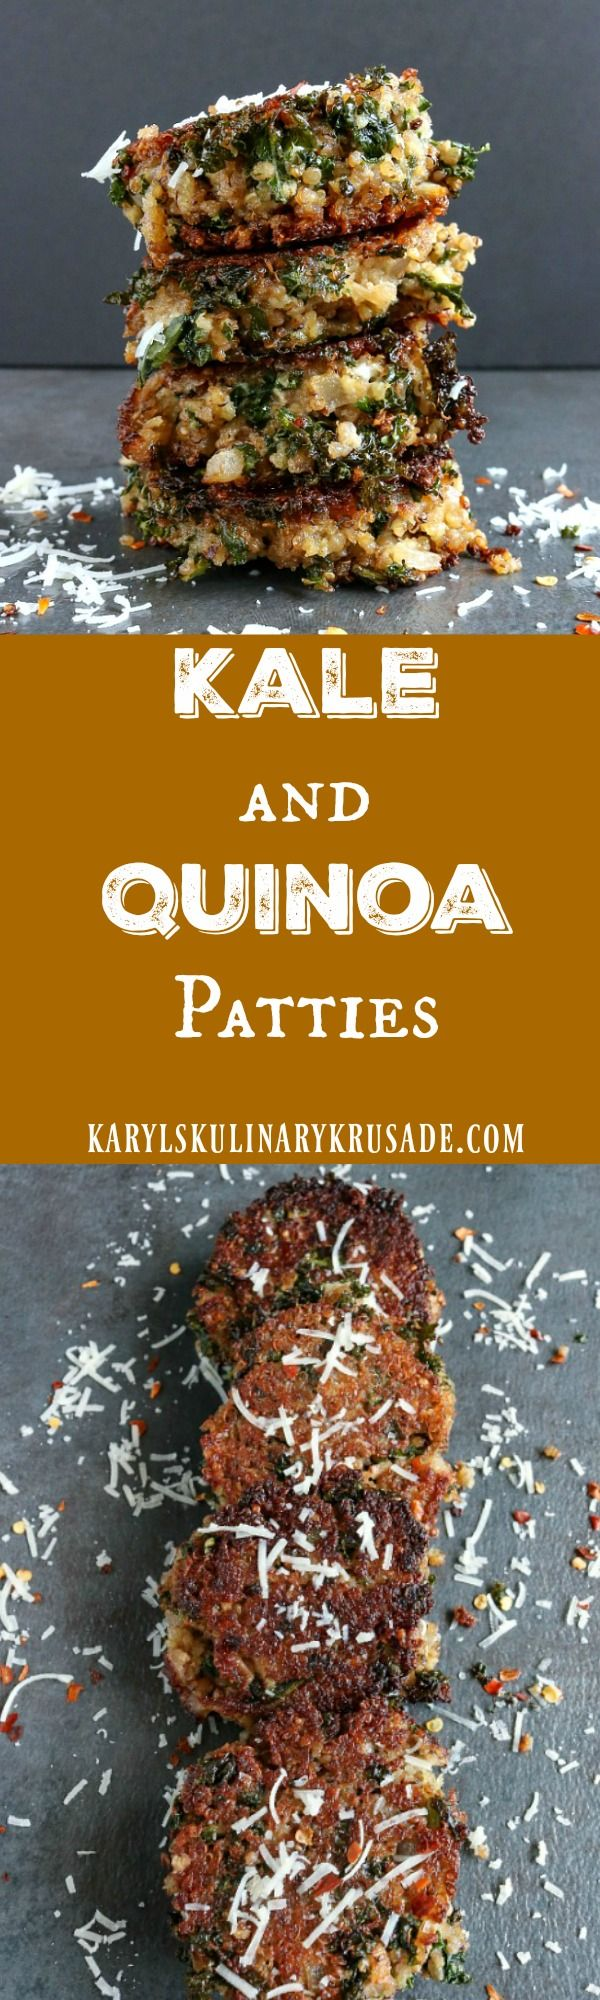 Kale and Quinoa Patties. A wnderfully flavorful combination of superfoods, these pan-fried patties are perfect for a hearty lunch that your family will love